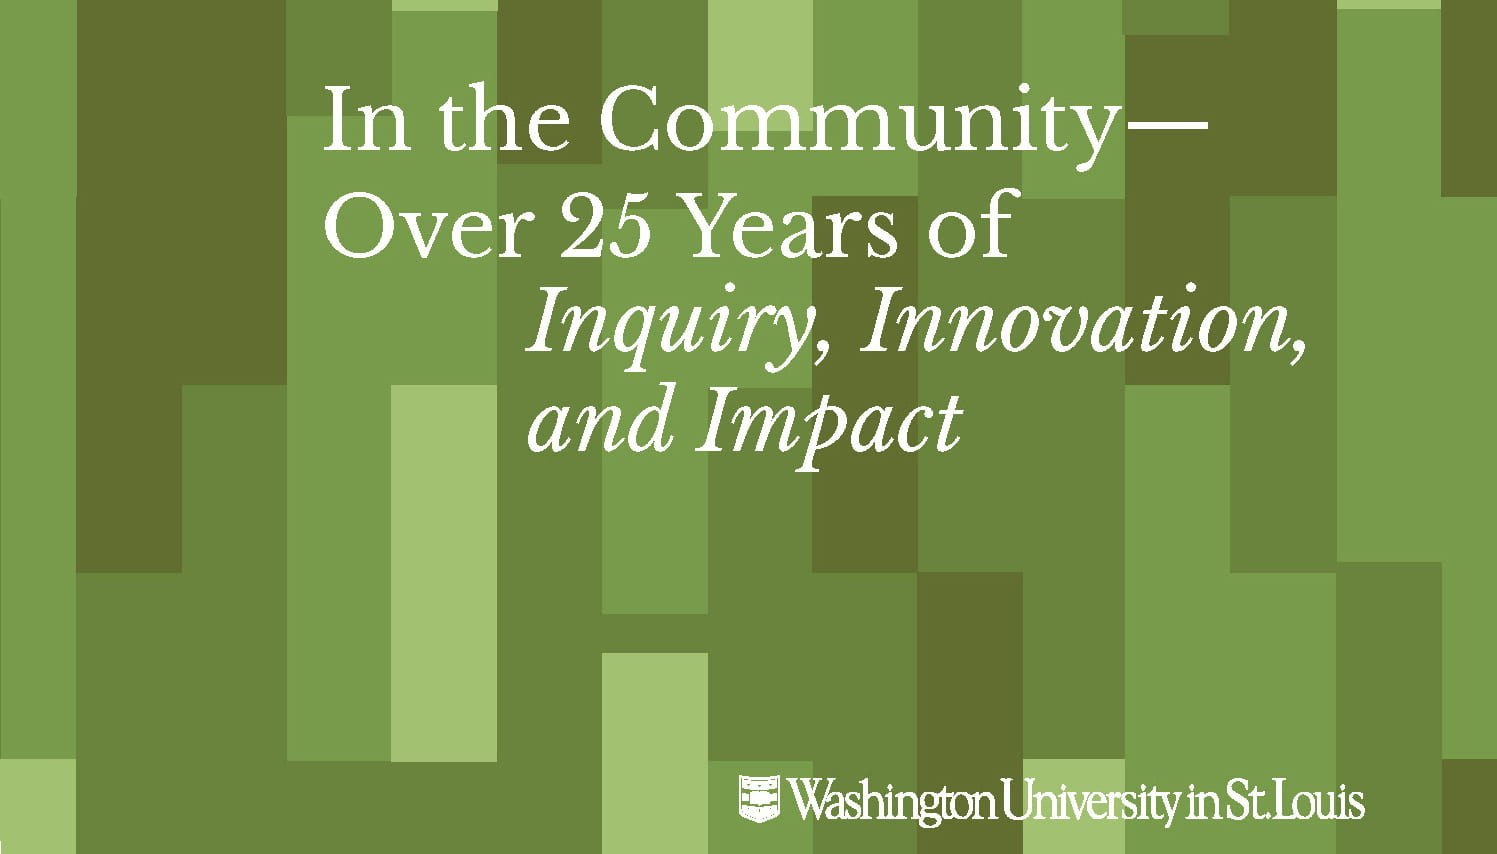 New CSD Report Celebrates over 25 Years in the Community